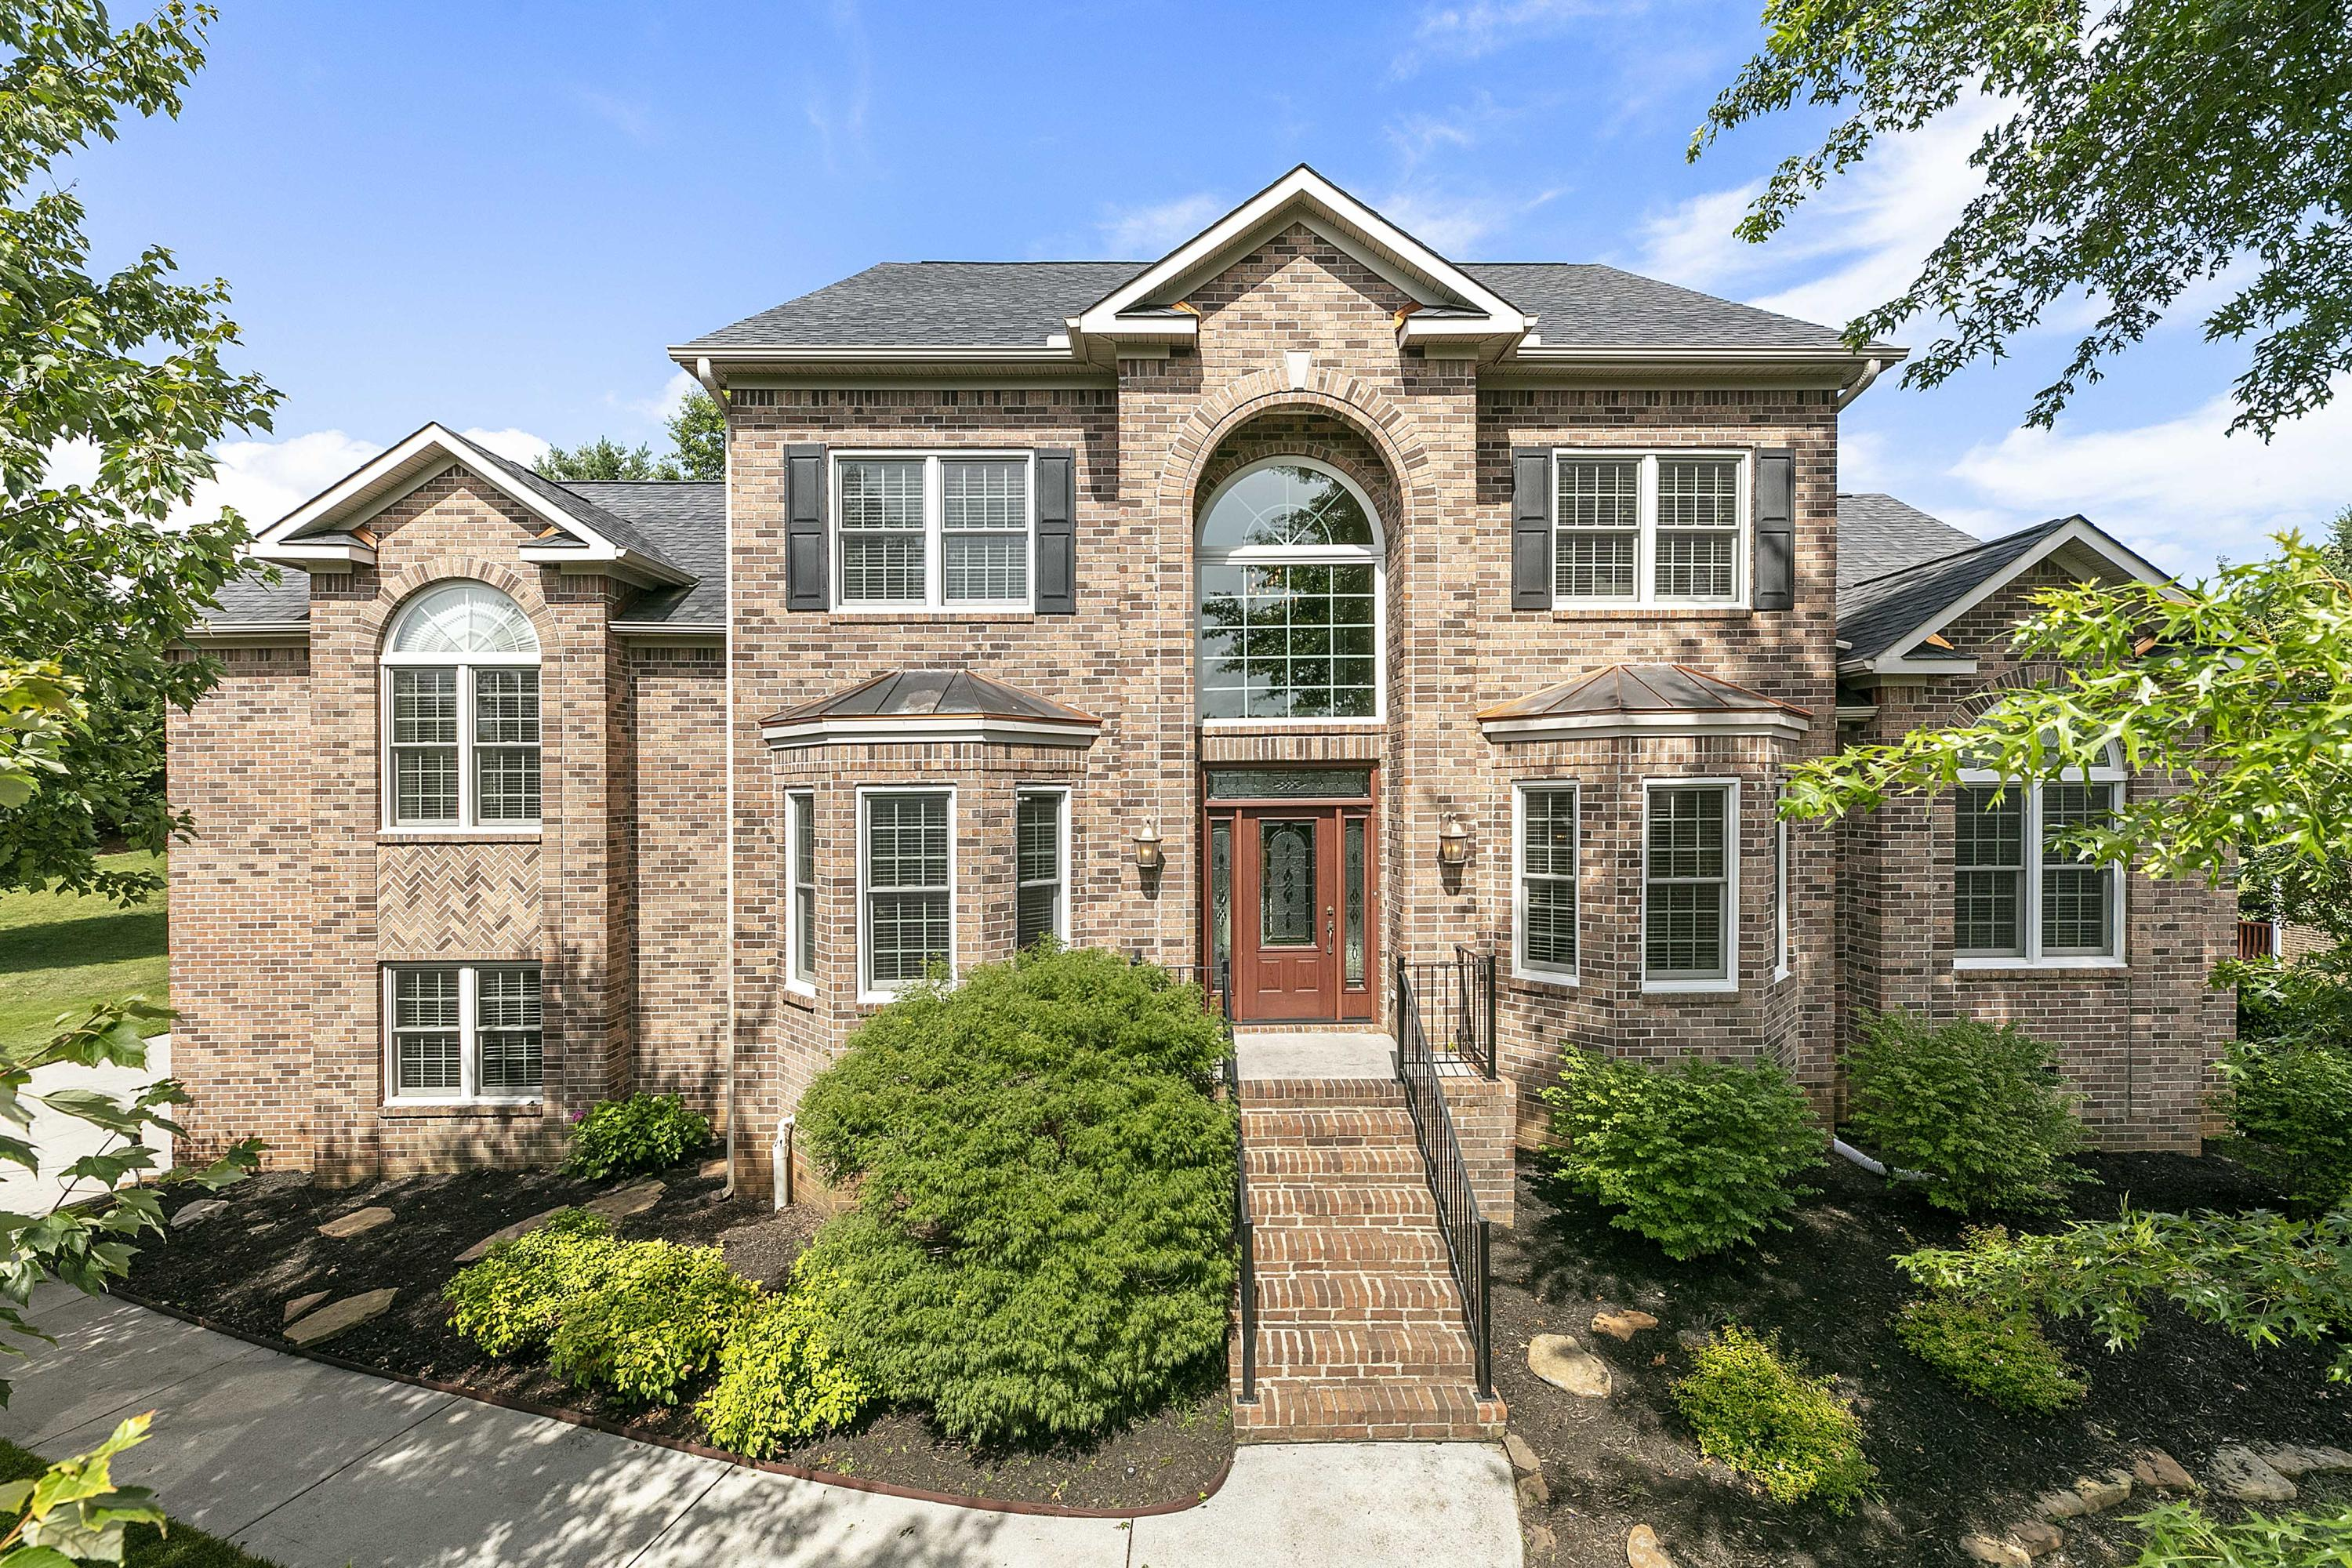 208 Windham Hill Rd, Knoxville, Tennessee 37934, 5 Bedrooms Bedrooms, ,3 BathroomsBathrooms,Single Family,For Sale,Windham Hill,1121921